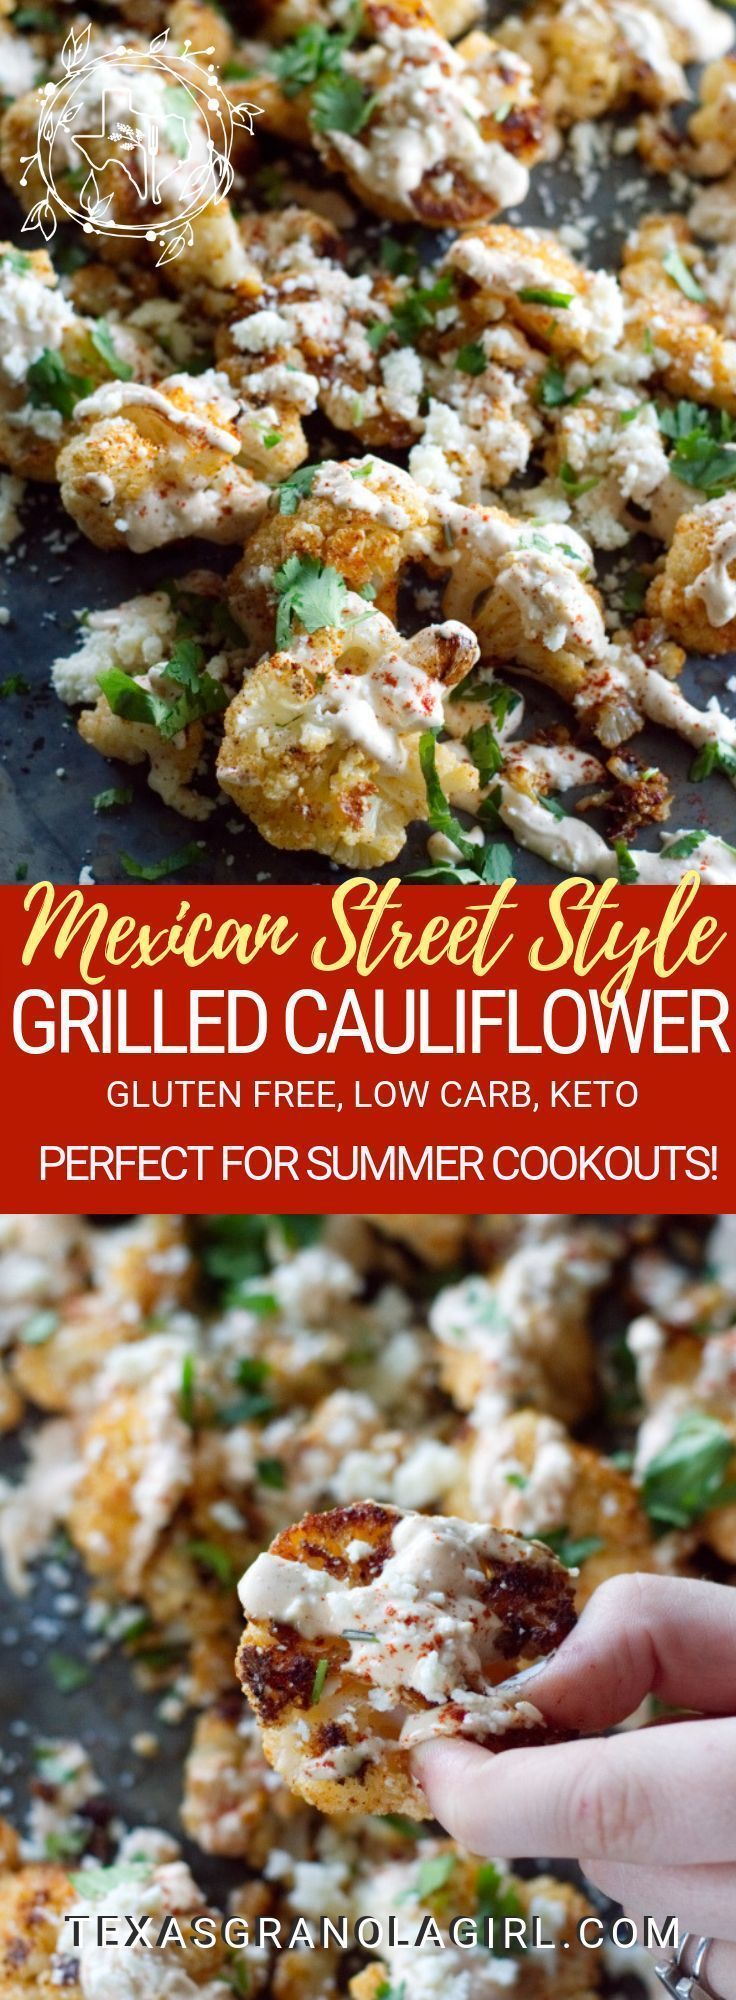 Photo of Grilled cauliflower in Mexican street style #comfortfoods Grilled cauliflower in